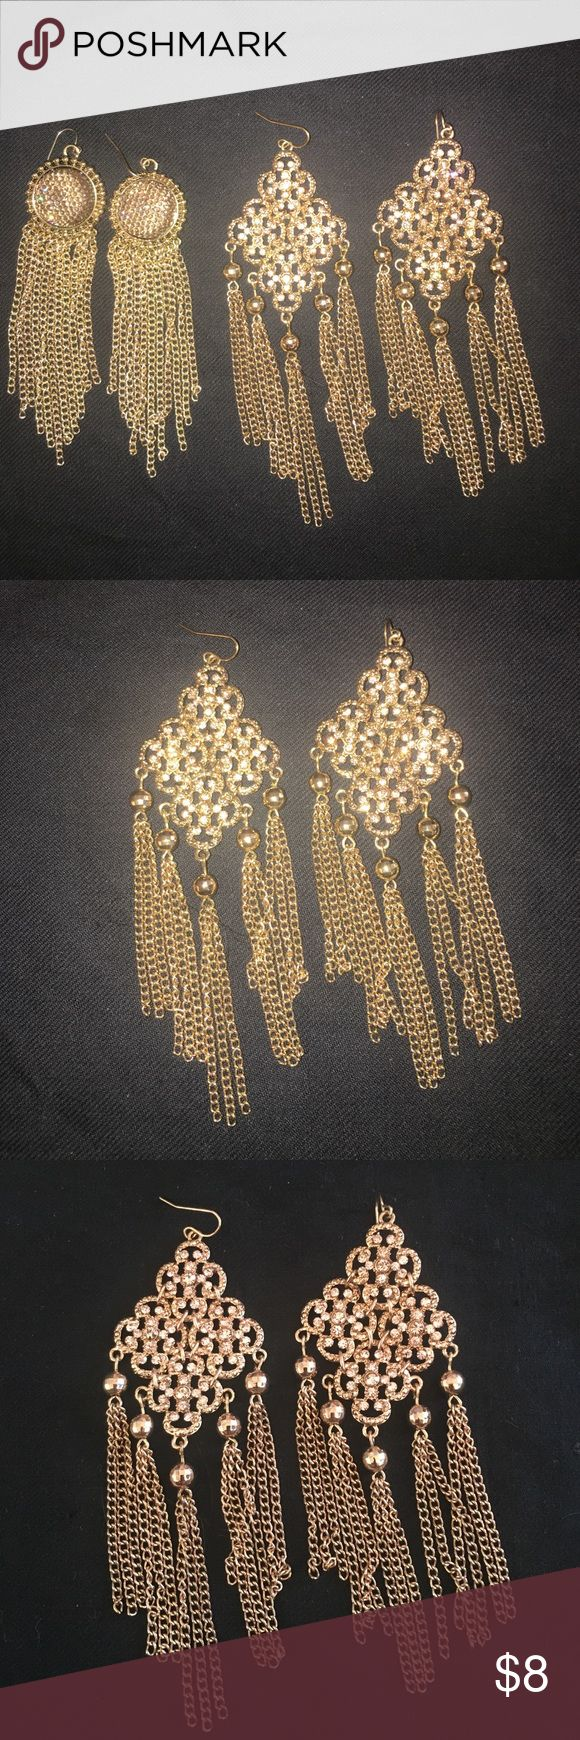 Two New Forever 21 Chandelier Chain Earrings Two pairs of Forever 21 earrings, never been worn.  The crystals in the filigree earrings are rose colored.  Pics were taken with and without flash. Forever 21 Jewelry Earrings